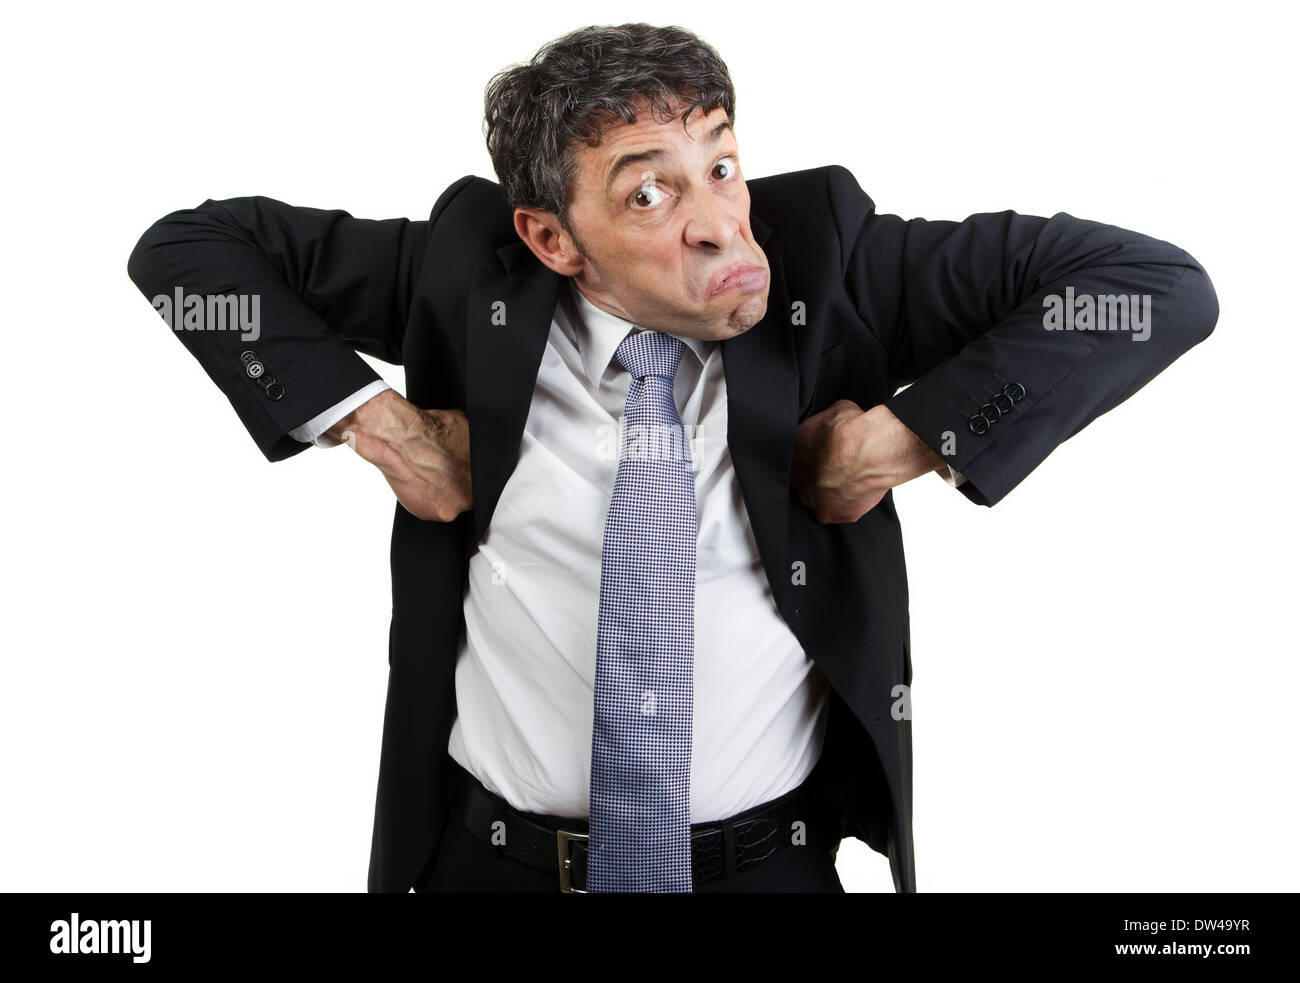 Weird businessman doing the monkey business moves - Stock Image